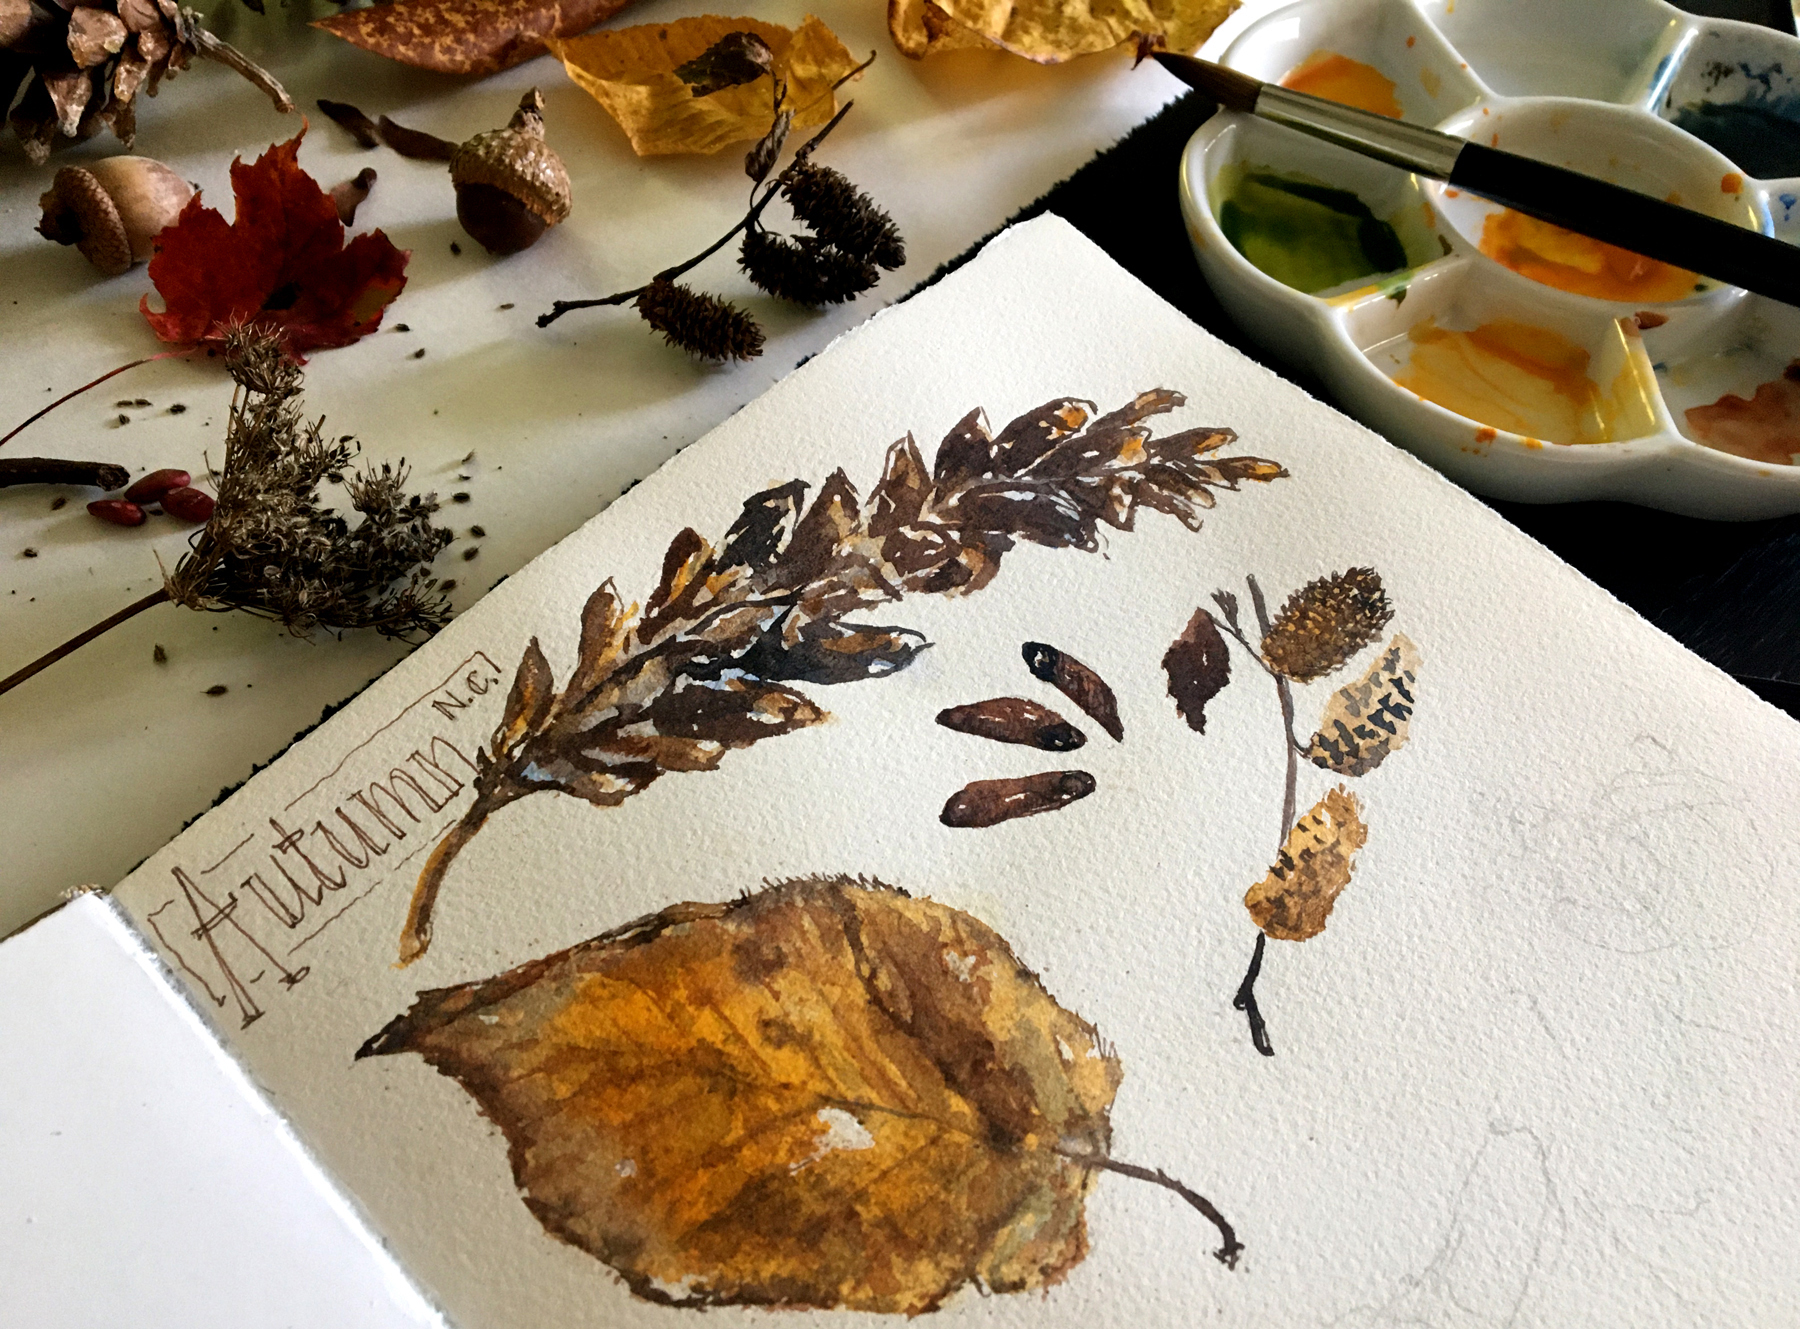 Autumn Nature Journal Page (work in progress)